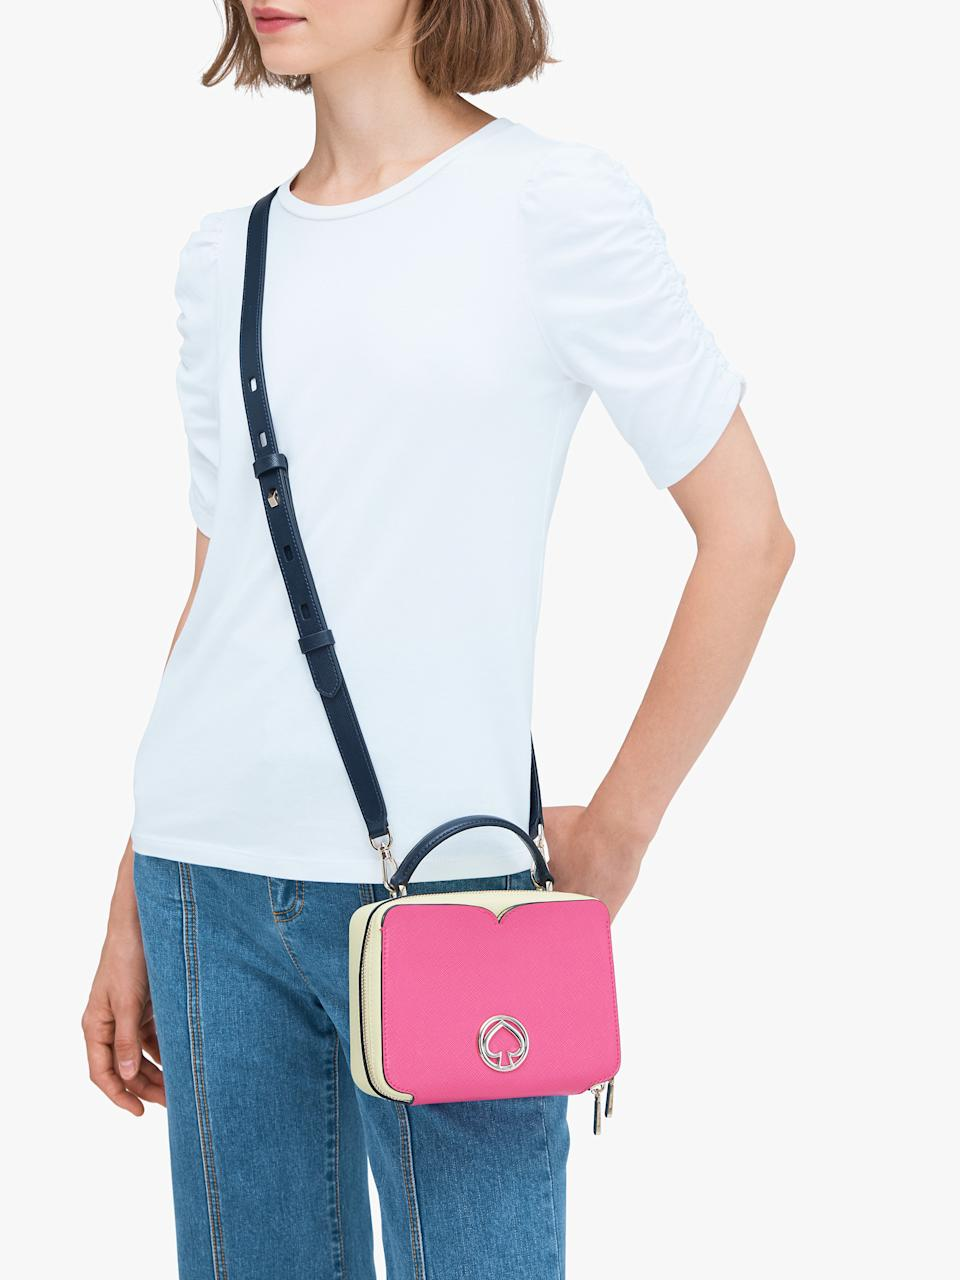 Vanity Mini Top Handle Bag. Image via Kate Spade.